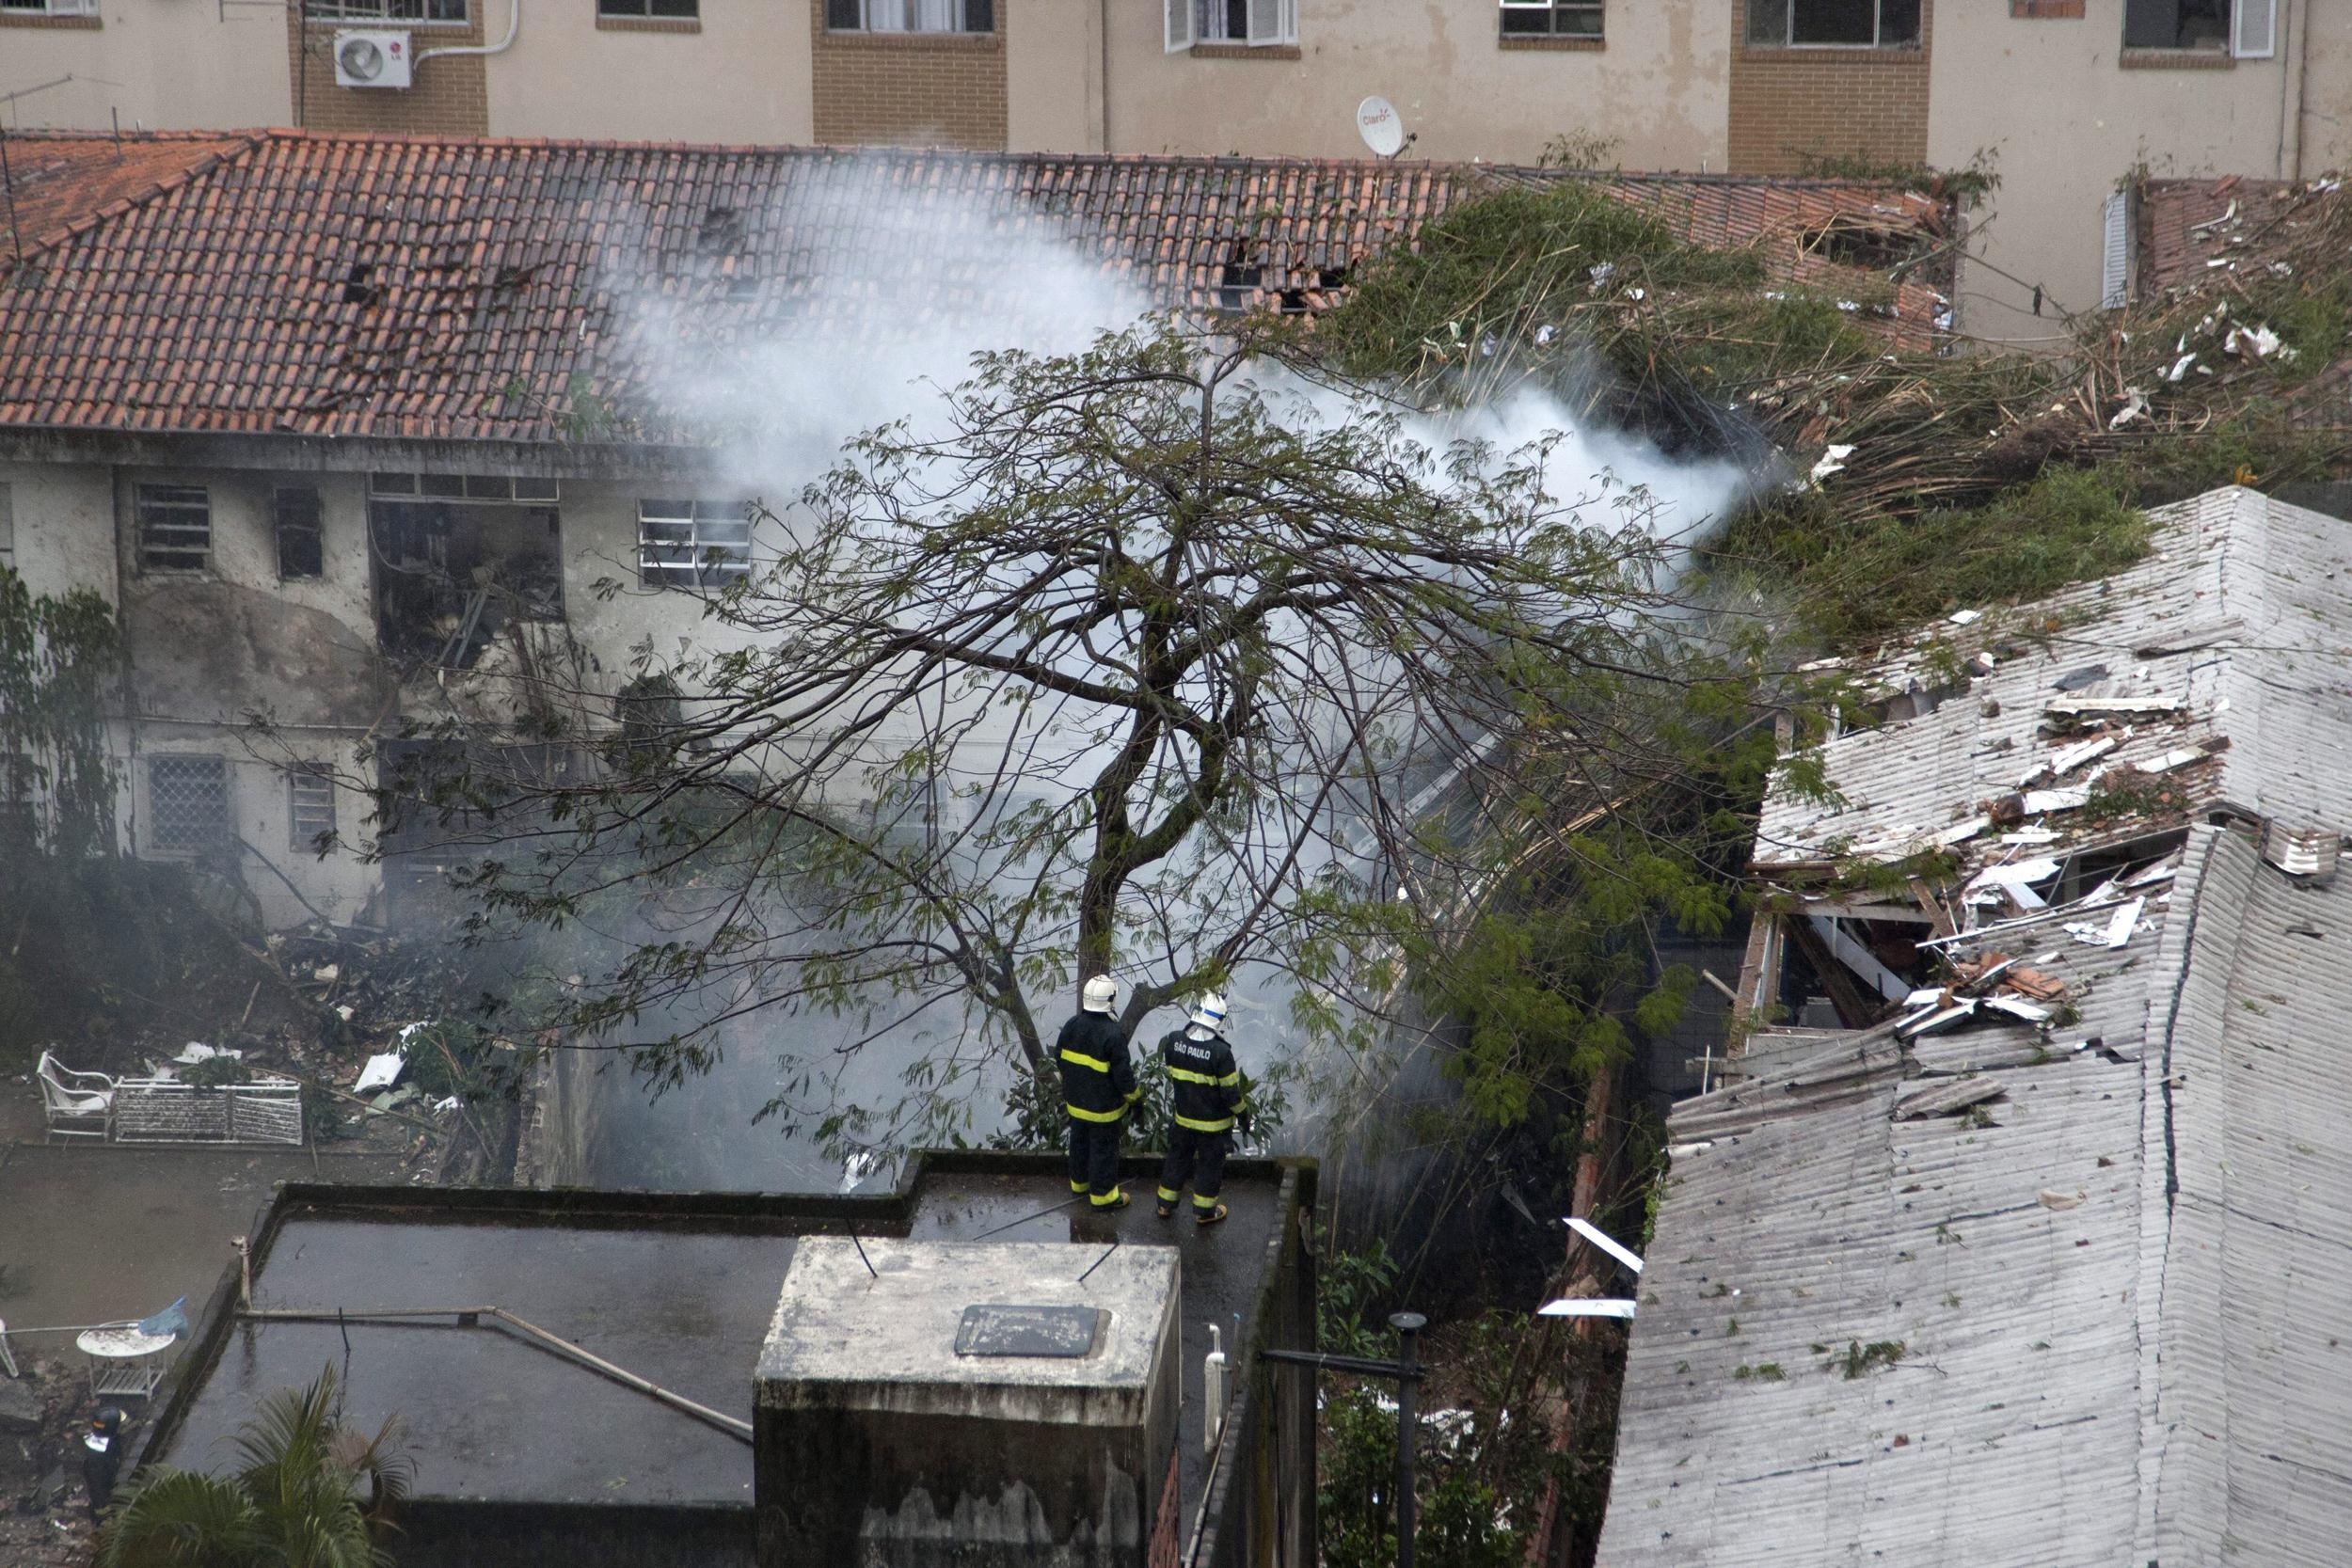 Image: View of damaged buildings where an aircraft crashed, in the residential area Na Rua Vahia de Abreu in Santos